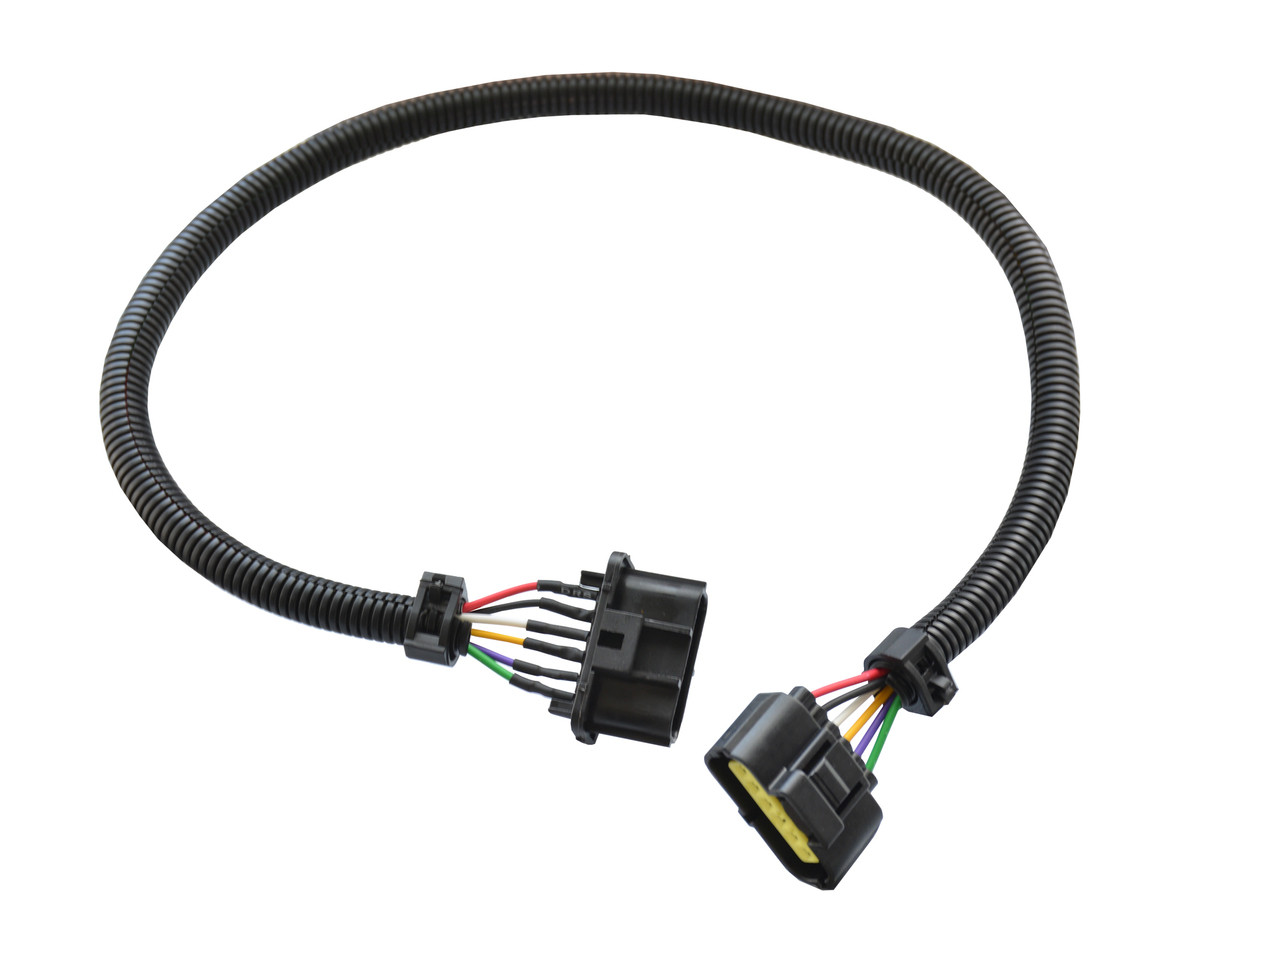 """Mass Air Flow 24"""" Extension Harness Sensor Connector 6-wire pin MAF Fits Ford 3.0 3.4 4.6 5.0 5.4 6.0 6.8 7.2"""